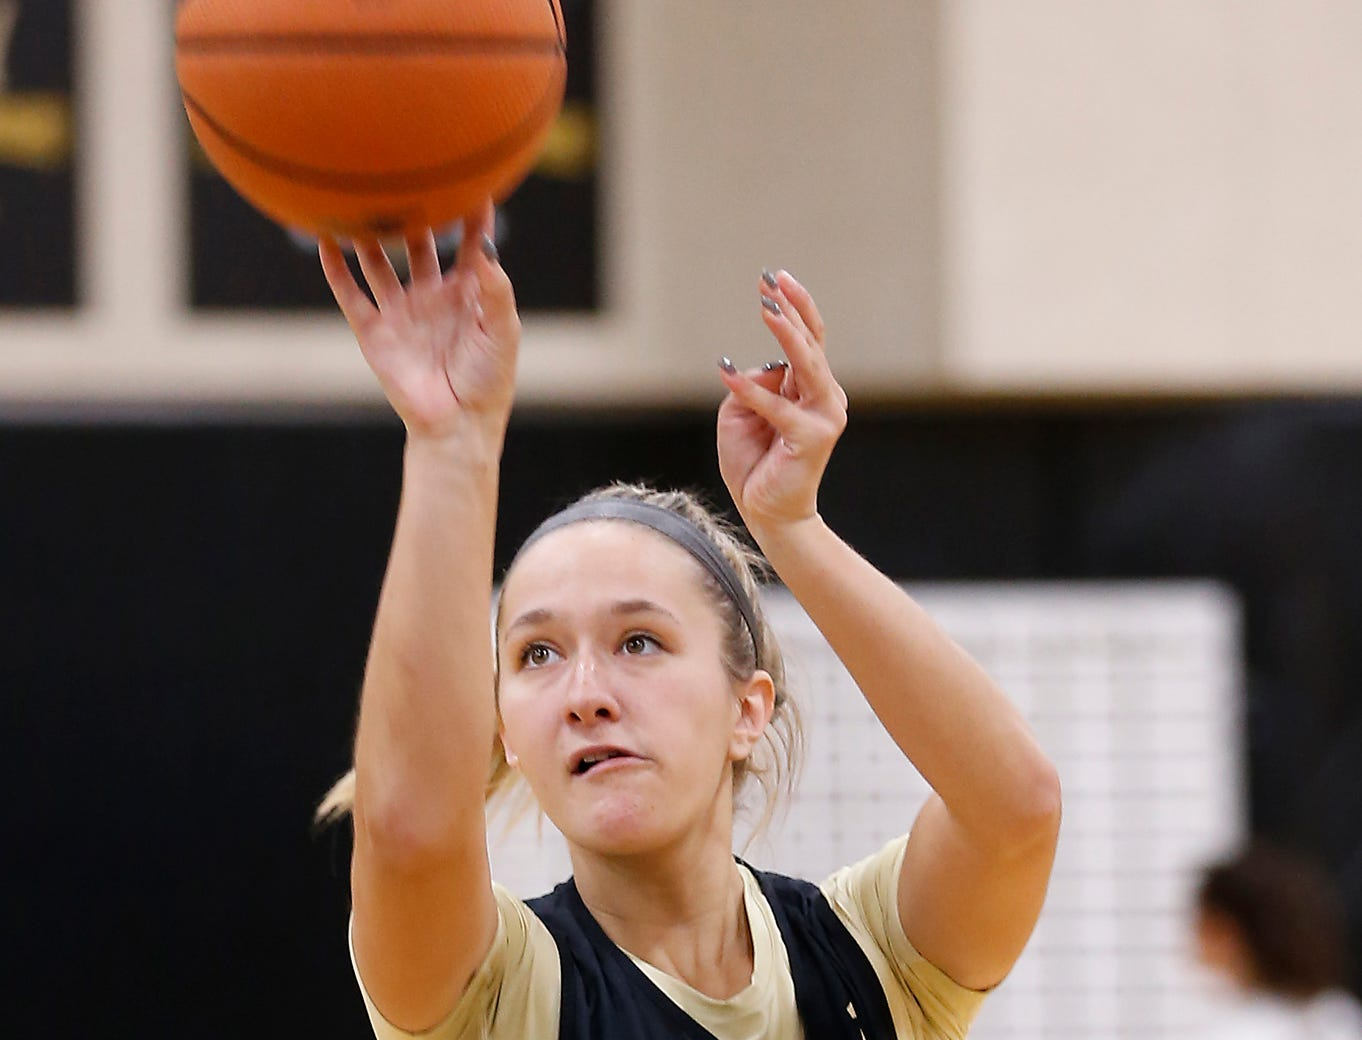 Karissa McLaughlin shoots baskets before the start of the practice for Purdue women's basketball Wednesday, September 26, 2018, at Cardinal Court in Mackey Arena.